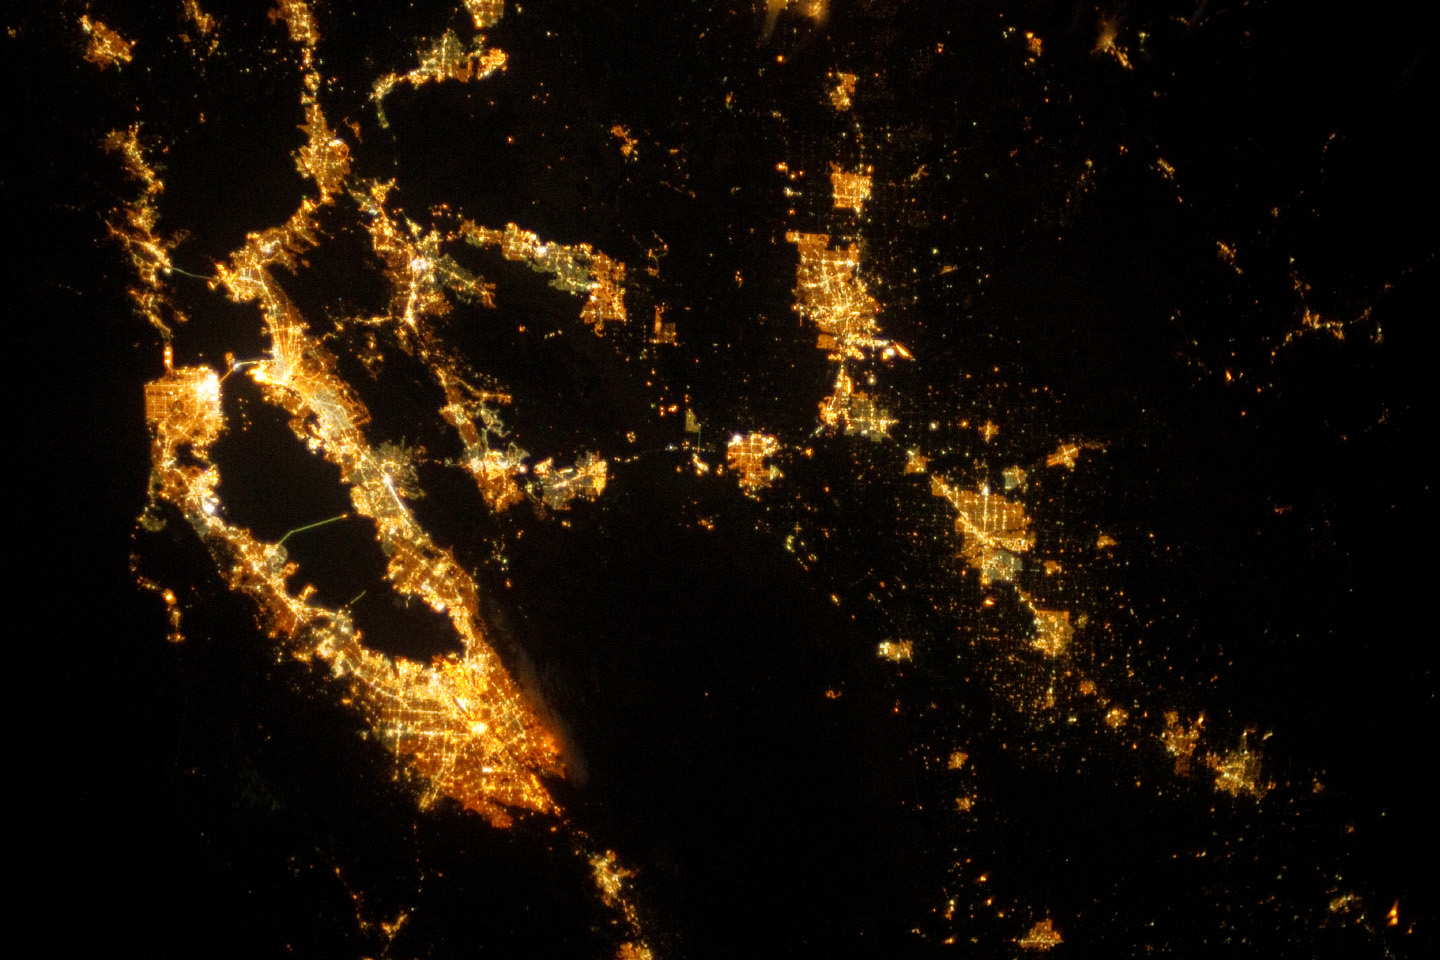 Today's Image of the Day comes thanks to the NASA Earth Observatory and features a look at the San Francisco area at night.